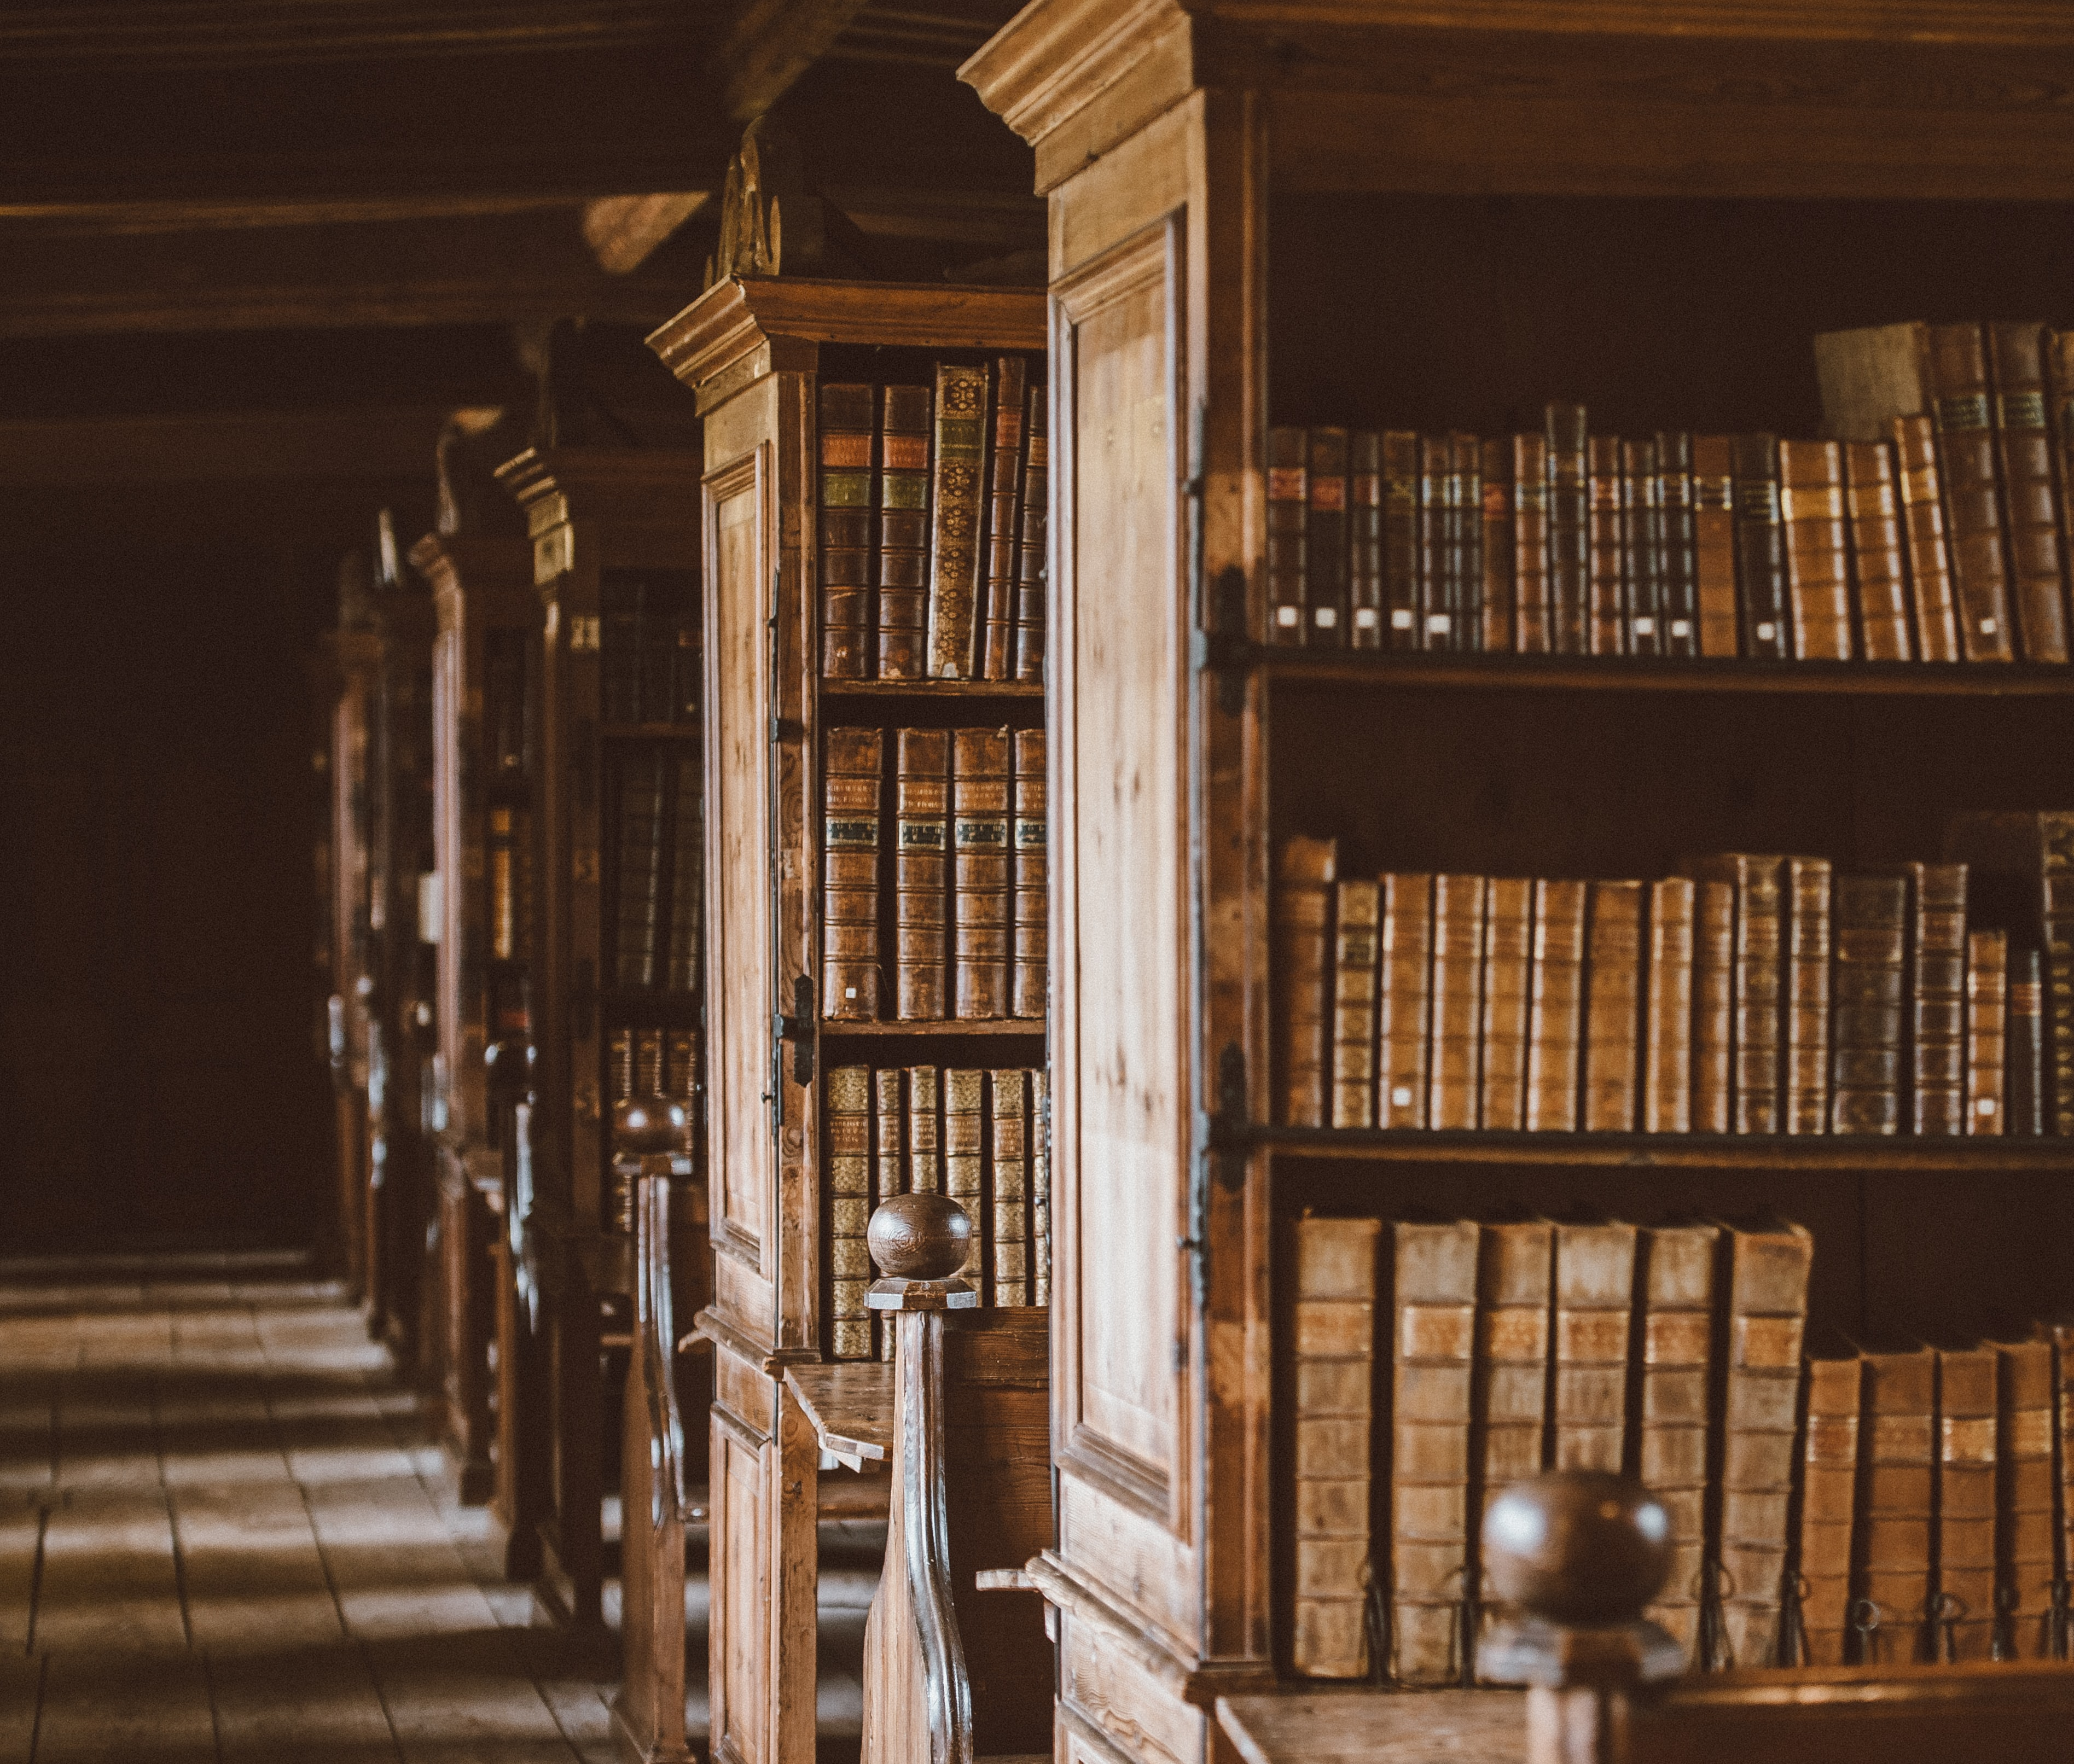 photo of library shelves